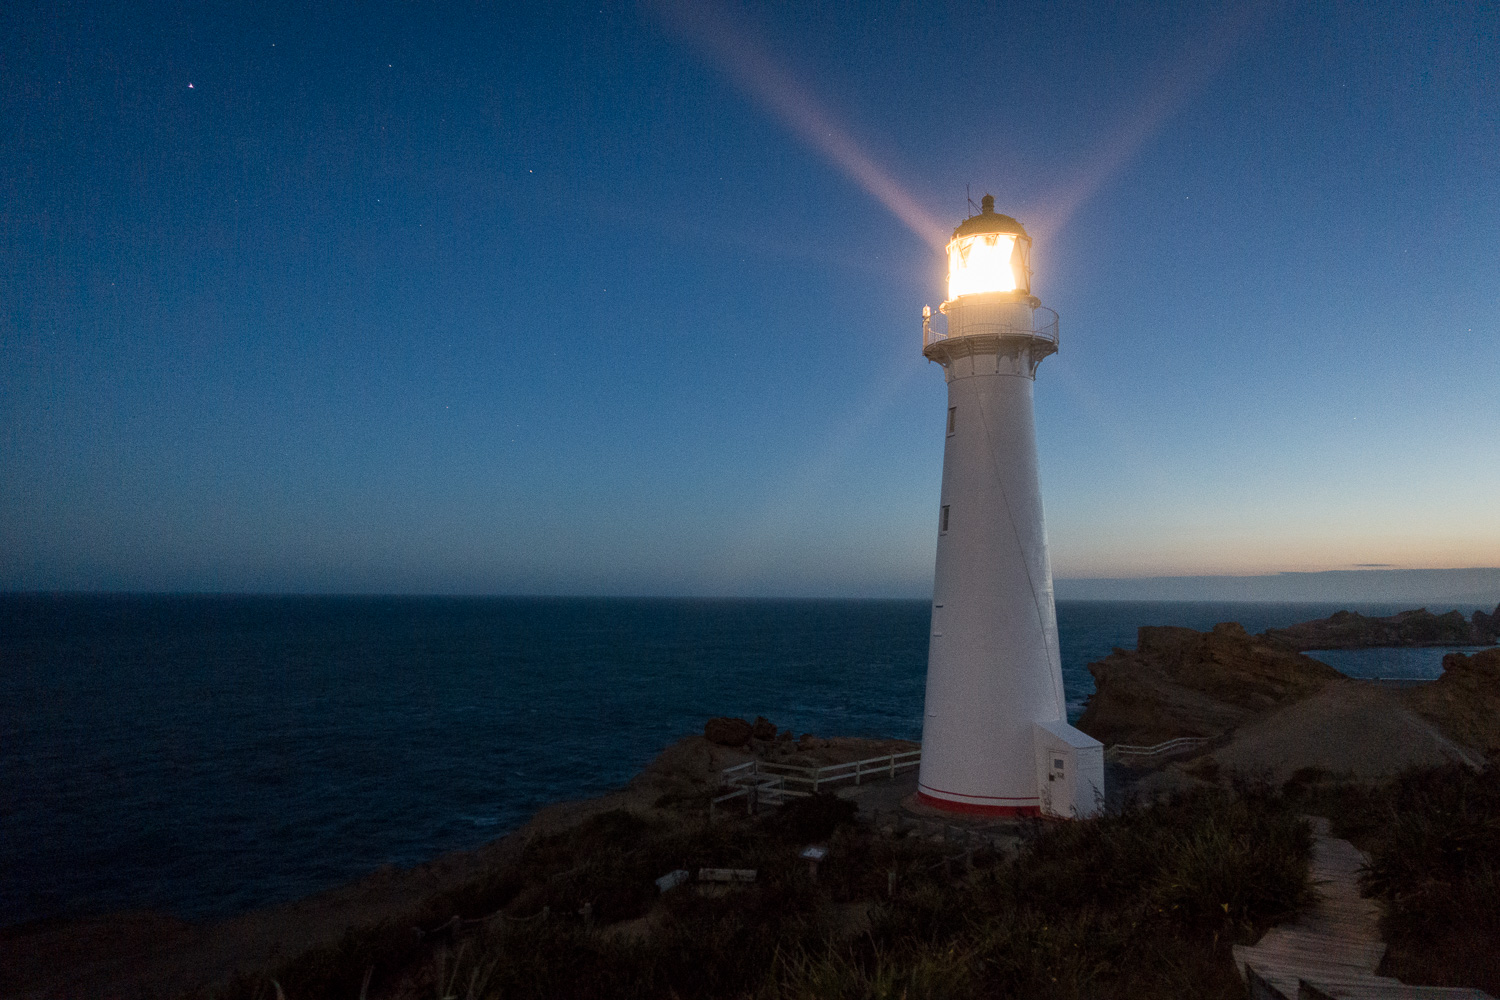 Castlepoint light house at night